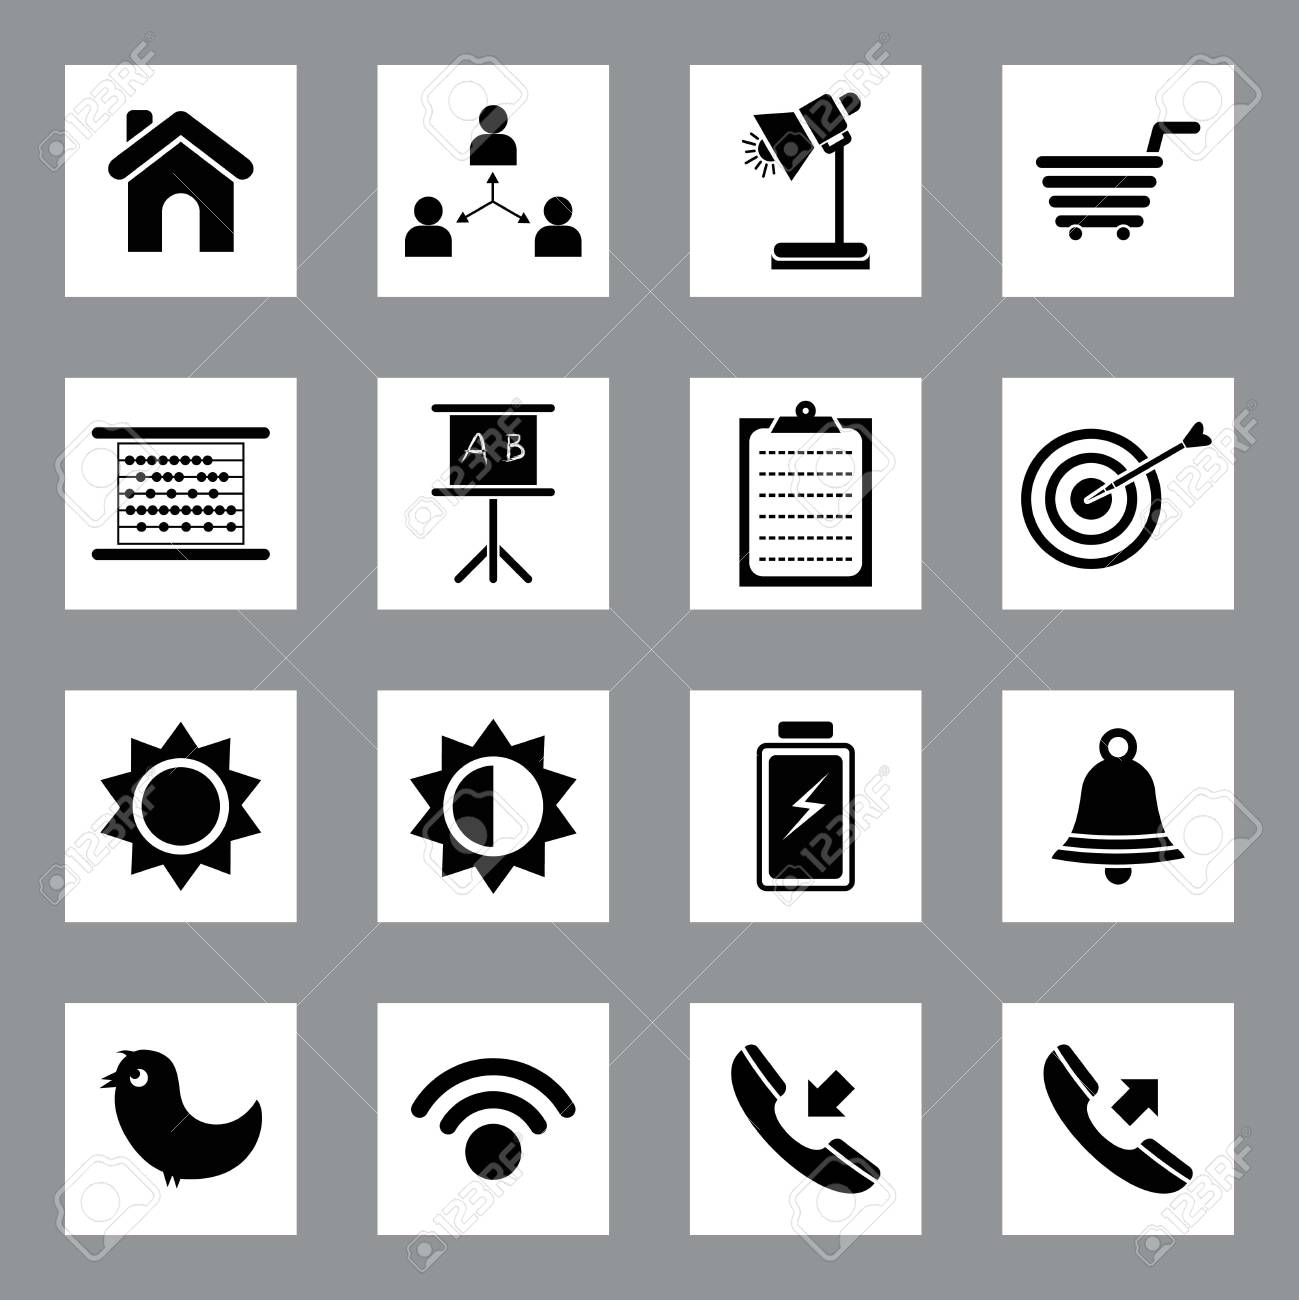 Very Useful   Attractive Colorful Icons For Web   Mobile on Buttons Stock Vector - 26449286